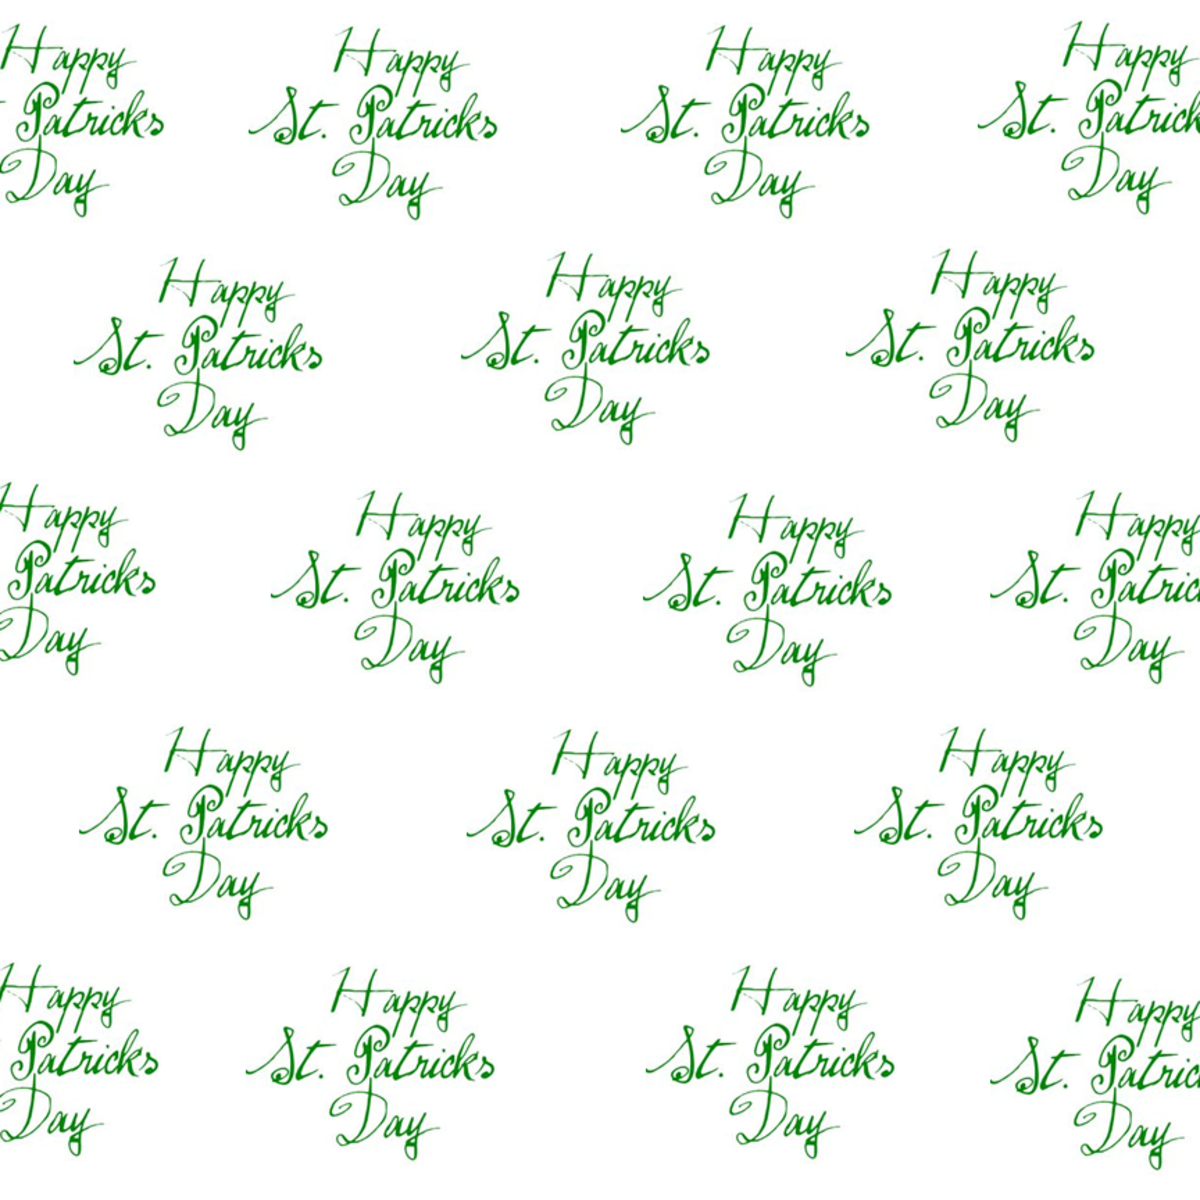 Free happy St. Patrick's Day scrapbook papers: white background